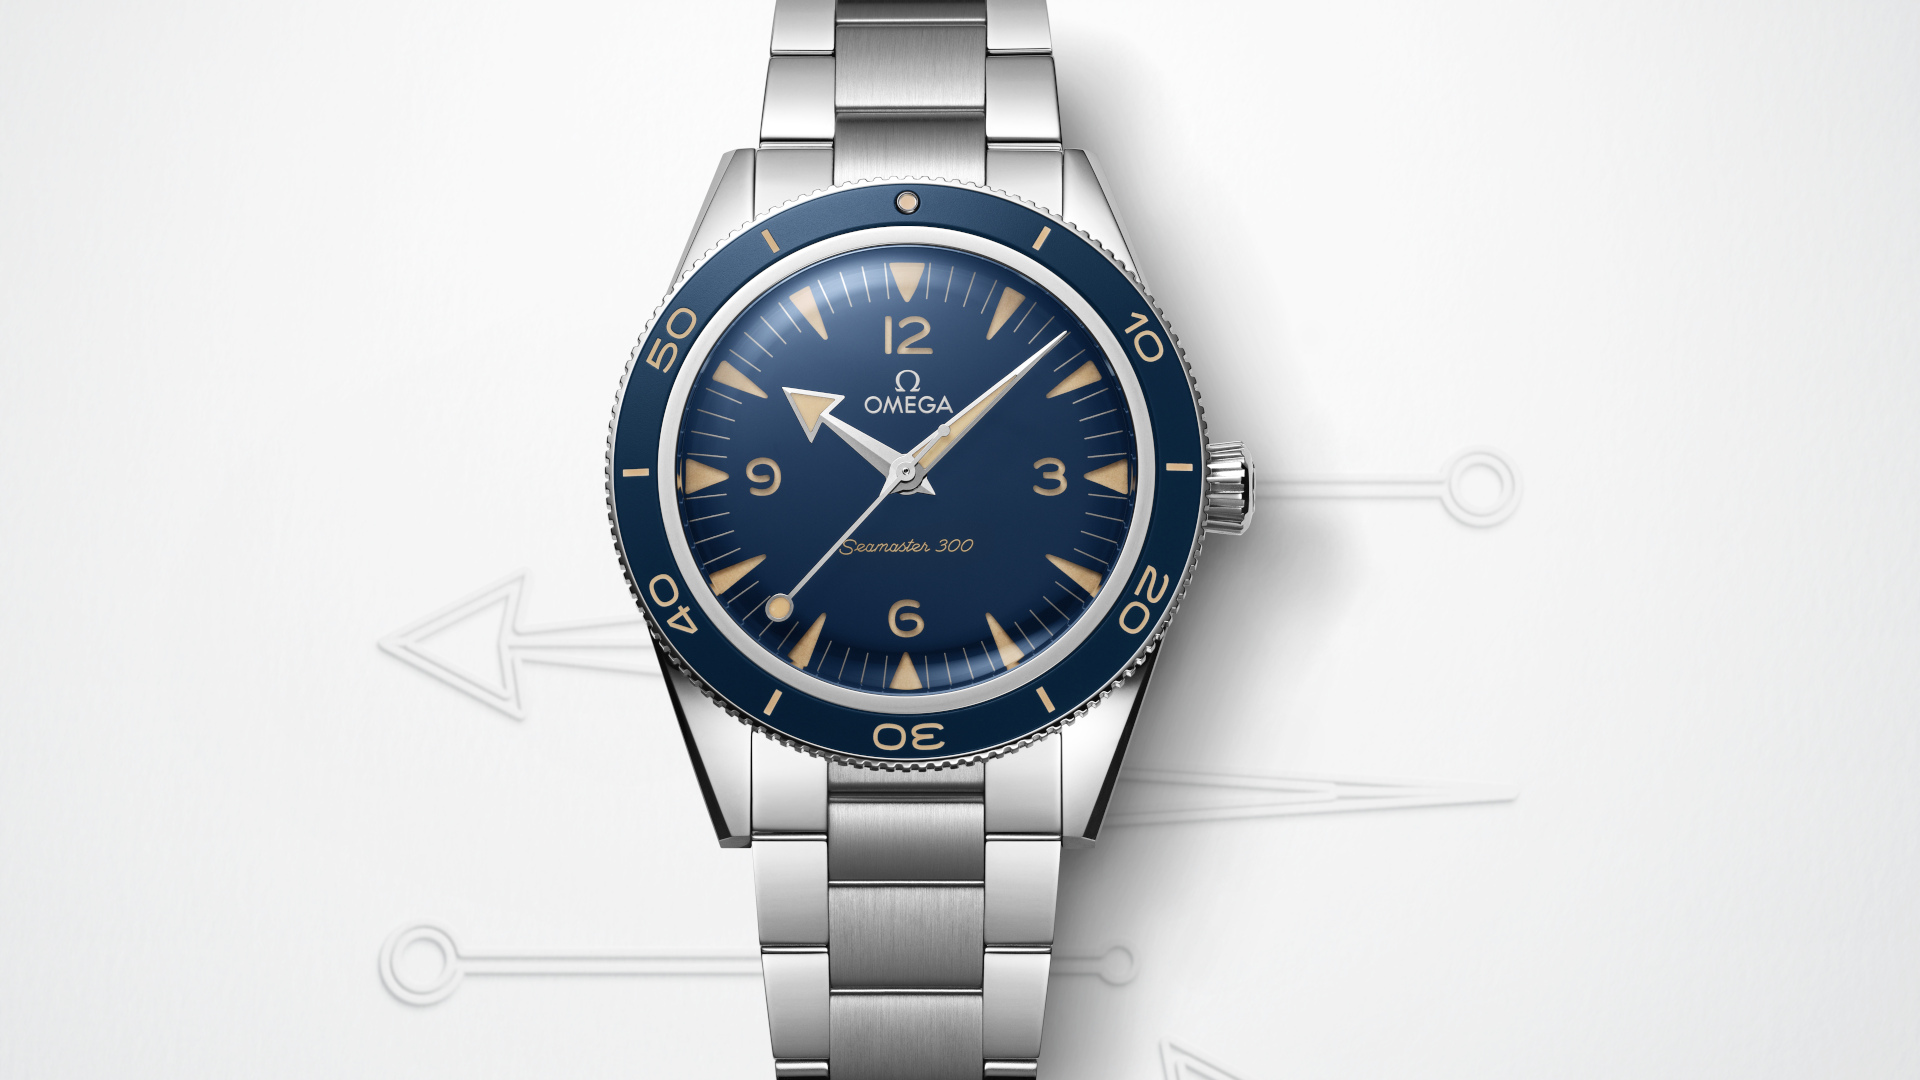 The Omega Seamaster 300, Now With A Sandwiched Dial And Lollipop Hand For Desert